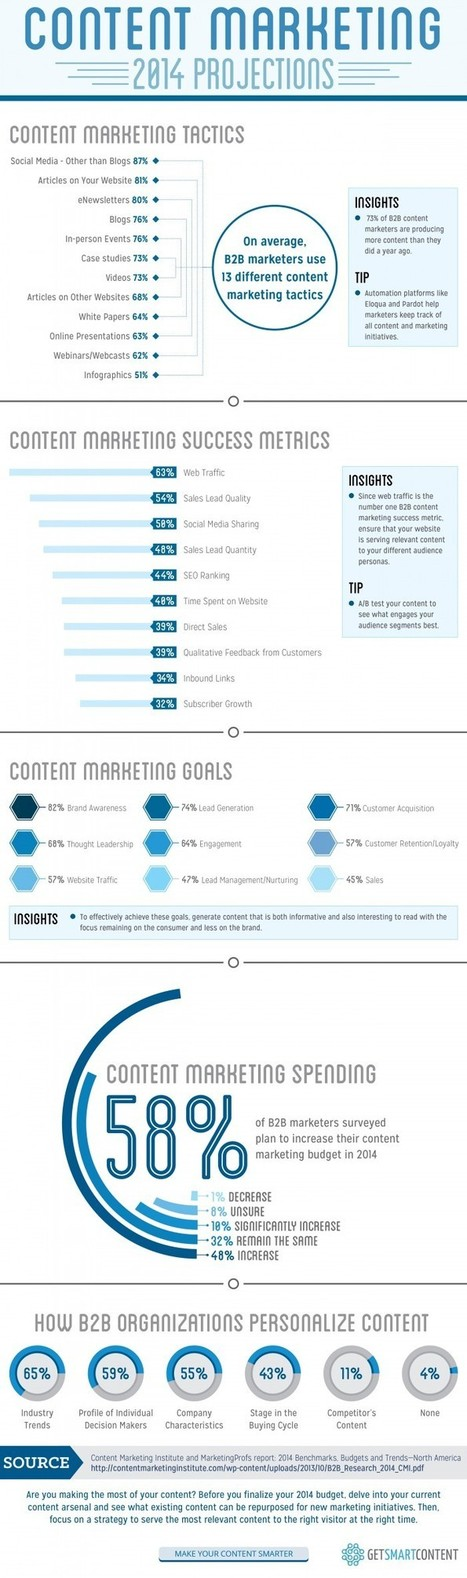 Content Marketing 2014 Projections [Infographic] | Marketing y ventas B2B | Scoop.it